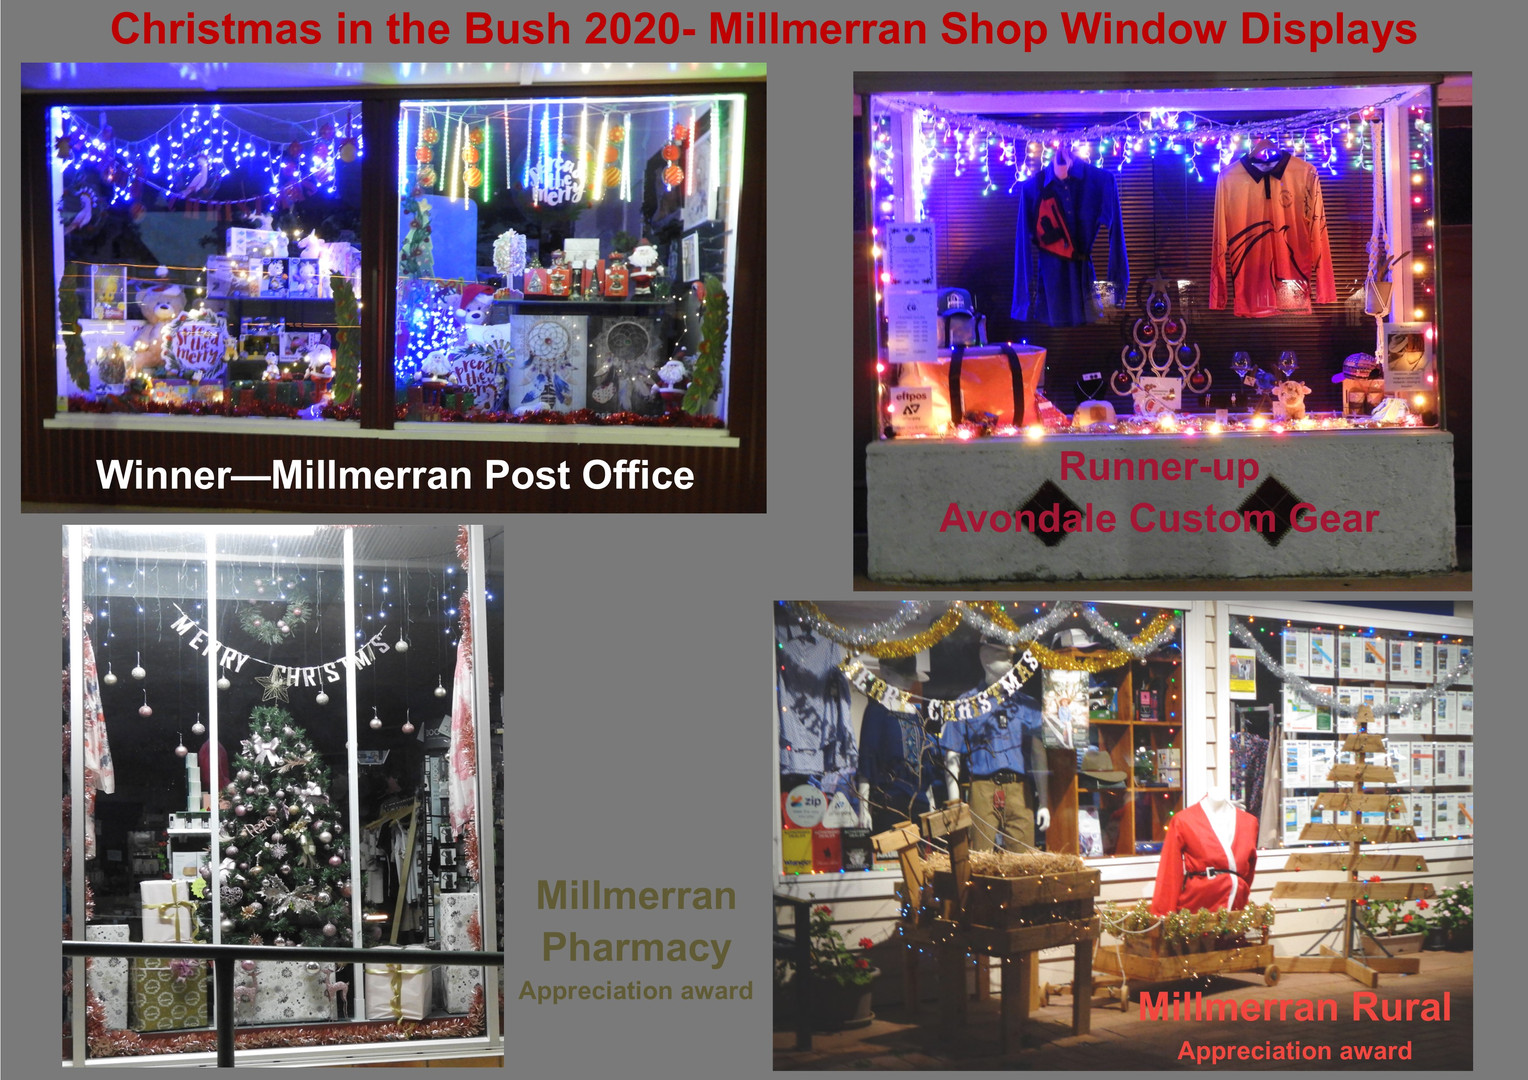 Citb 2020 Shop Windows.jpg